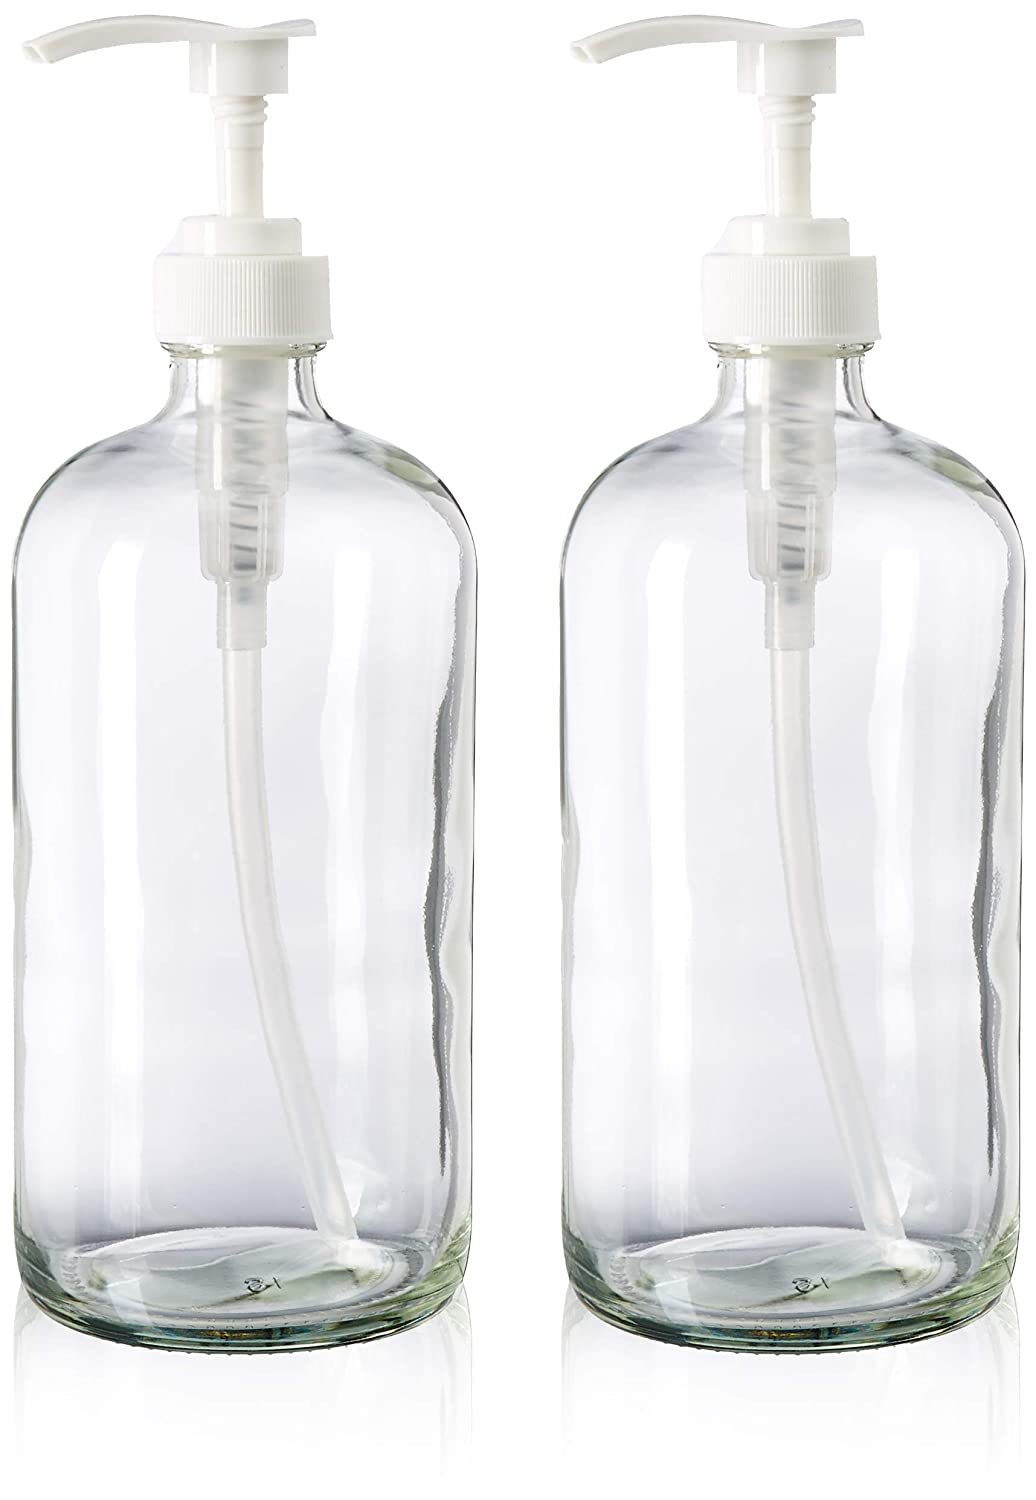 32-Ounce Large Clear Glass Boston Round Bottles w Pumps. Great for Lotions, Soaps, Oils, Sauces – Food Safe and Medical Grade – by kitchentoolz Pack of 2